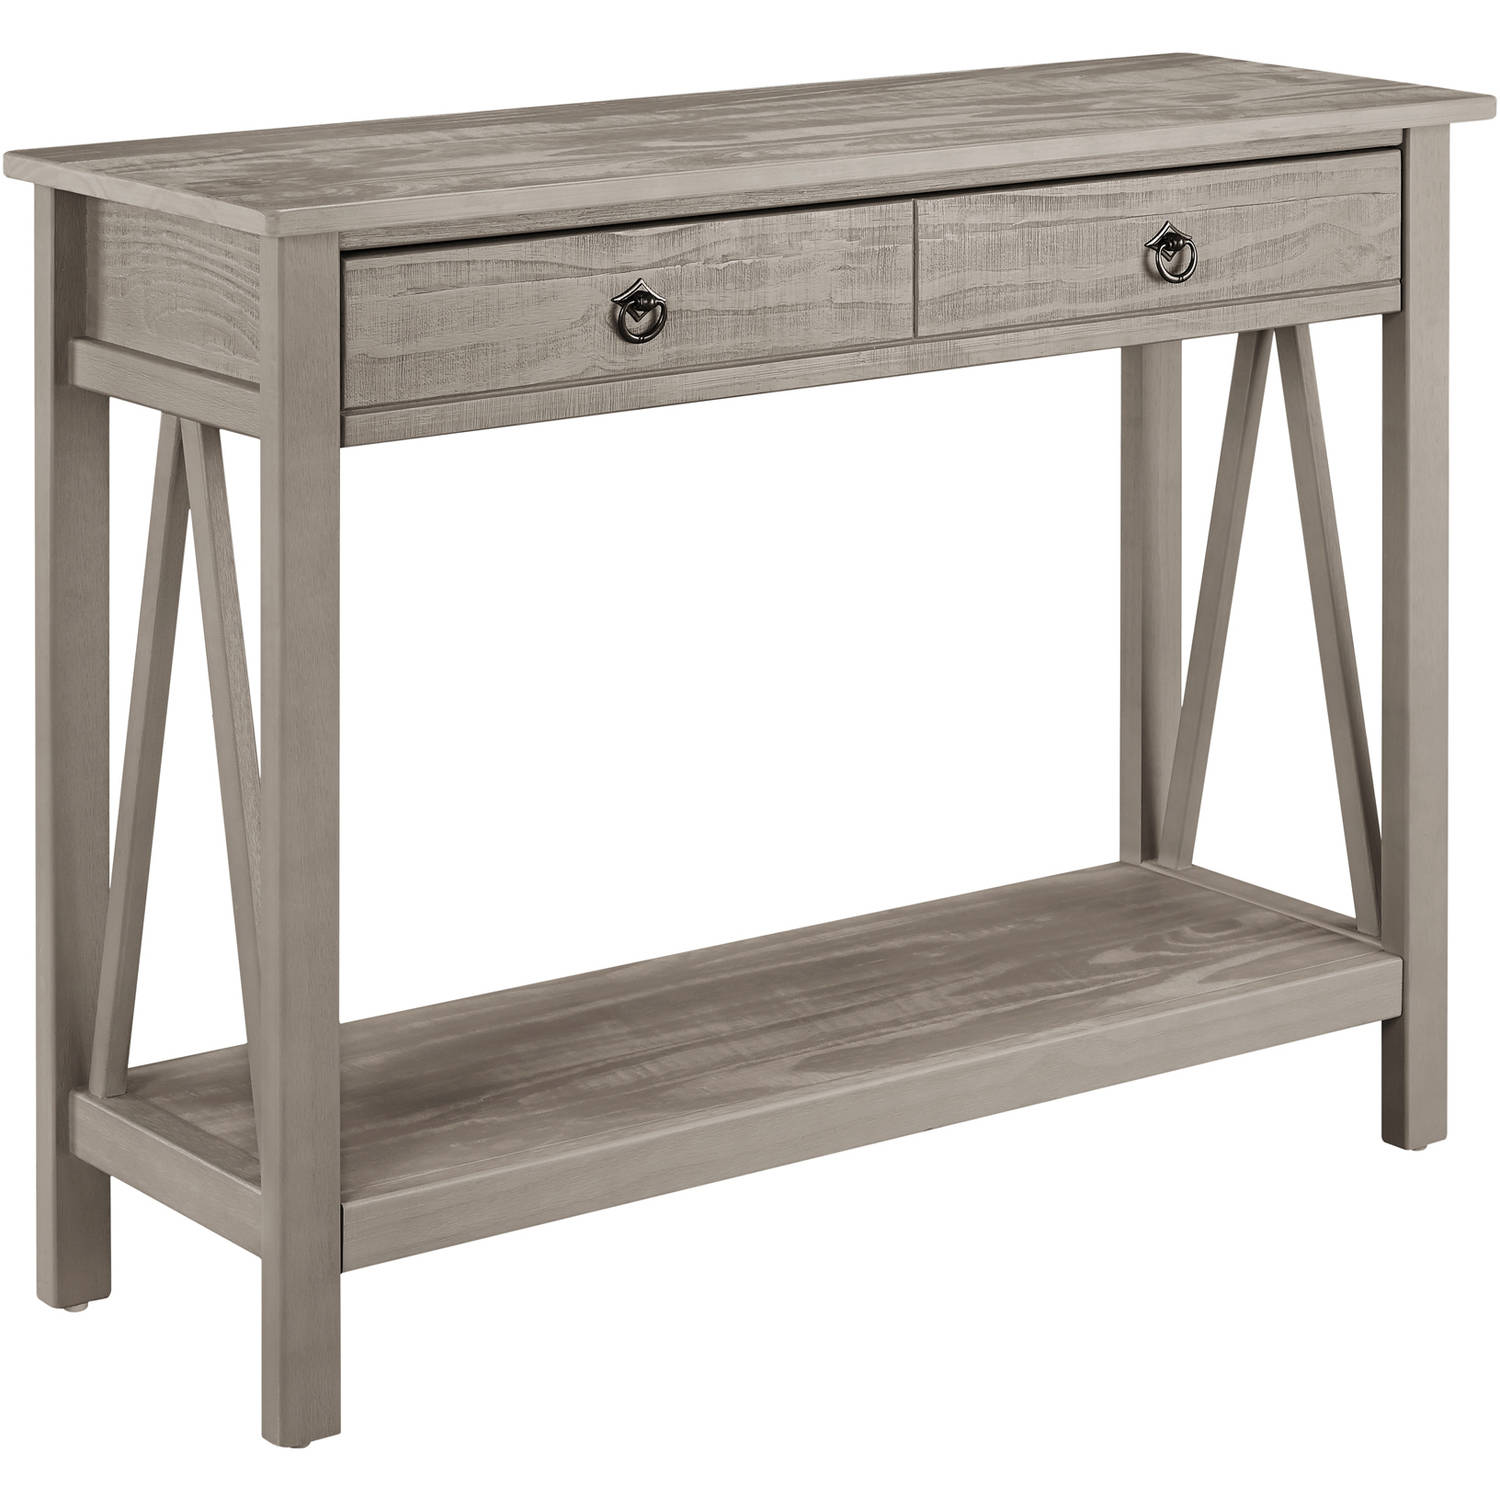 High Quality Linon Titian Console Table, Rustic Gray, 2 Drawers   Walmart.com